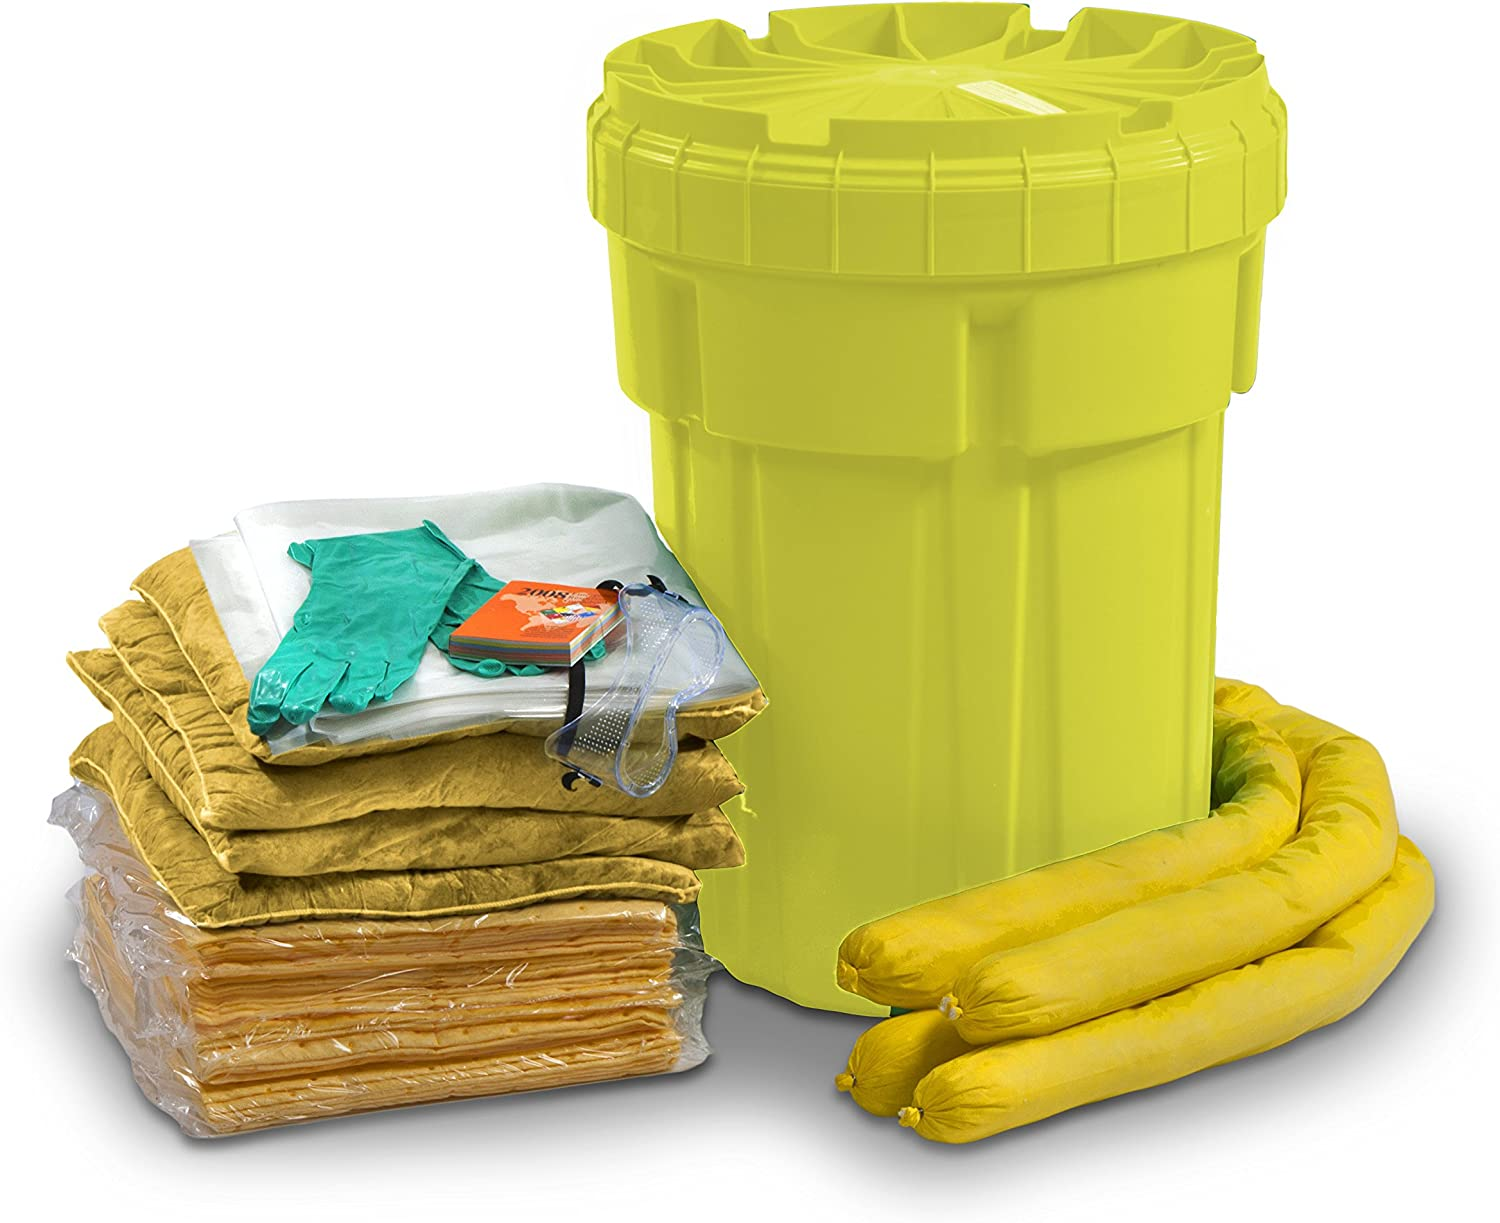 ESP SK-H30 56 Piece 30 Gallons Hazmat Absorbent Ecofriendly Spill Kit, 25 Gallons Absorbency, Yellow: Industrial & Scientific